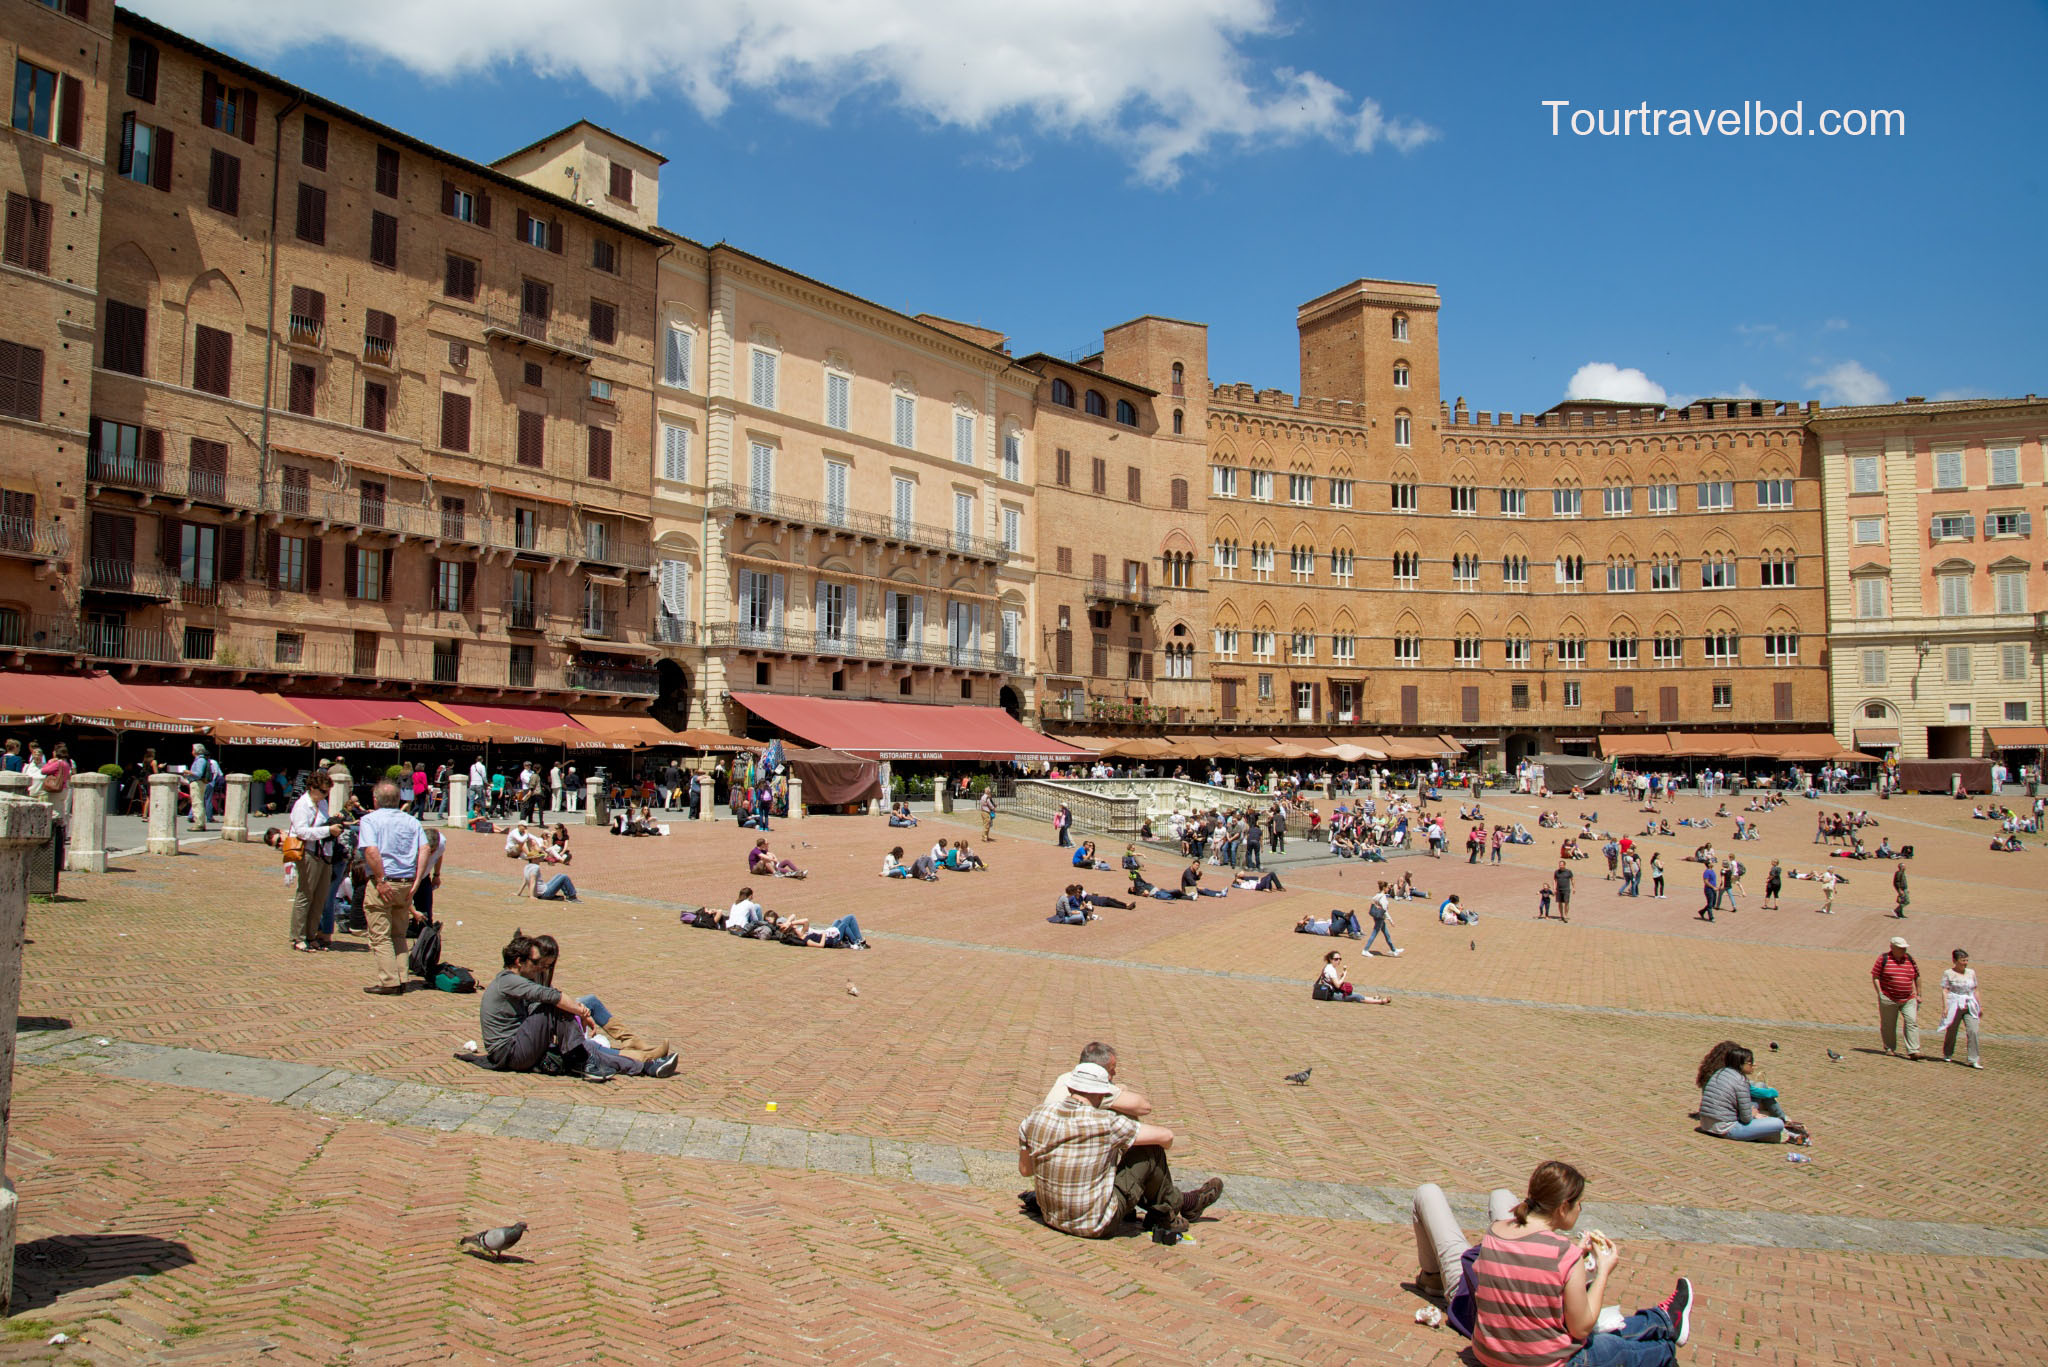 People-in-Piazza-del-Campo